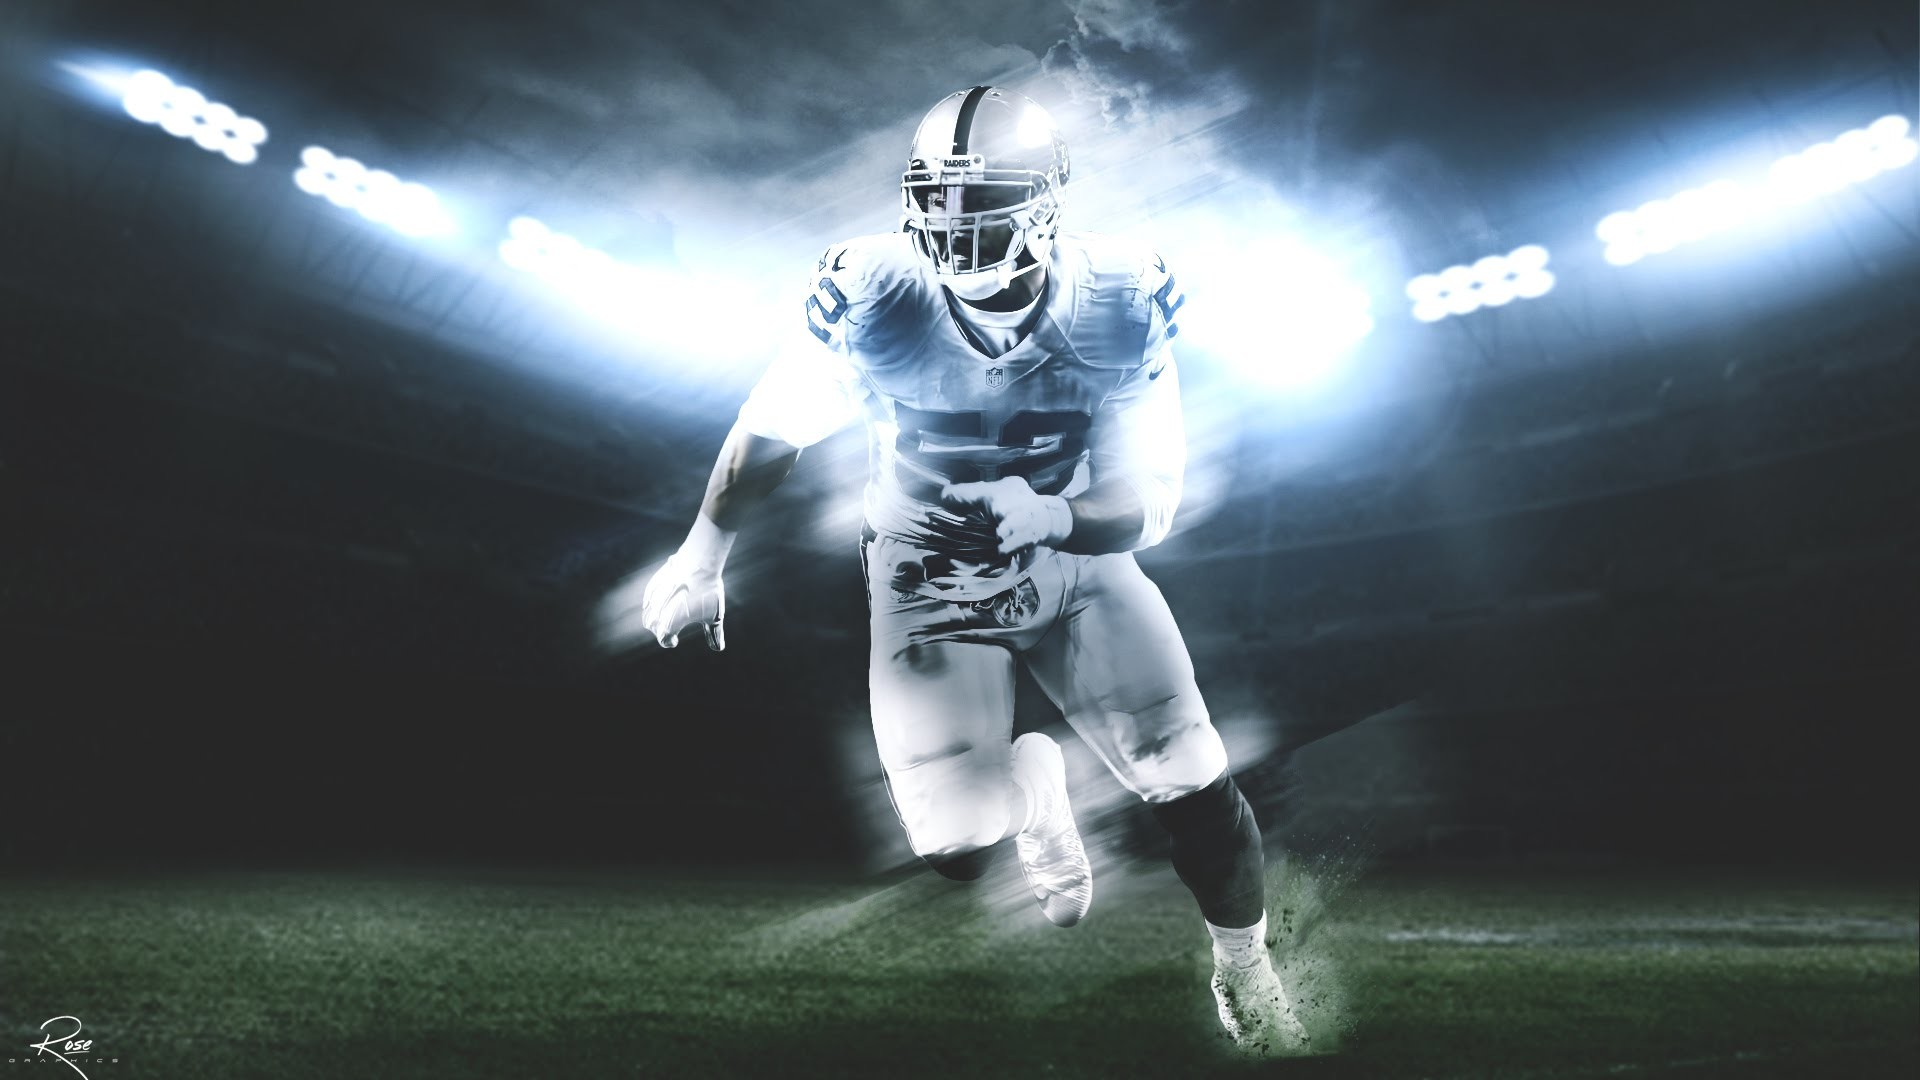 2400x1600 free wallpaper and screensavers for oakland raiders